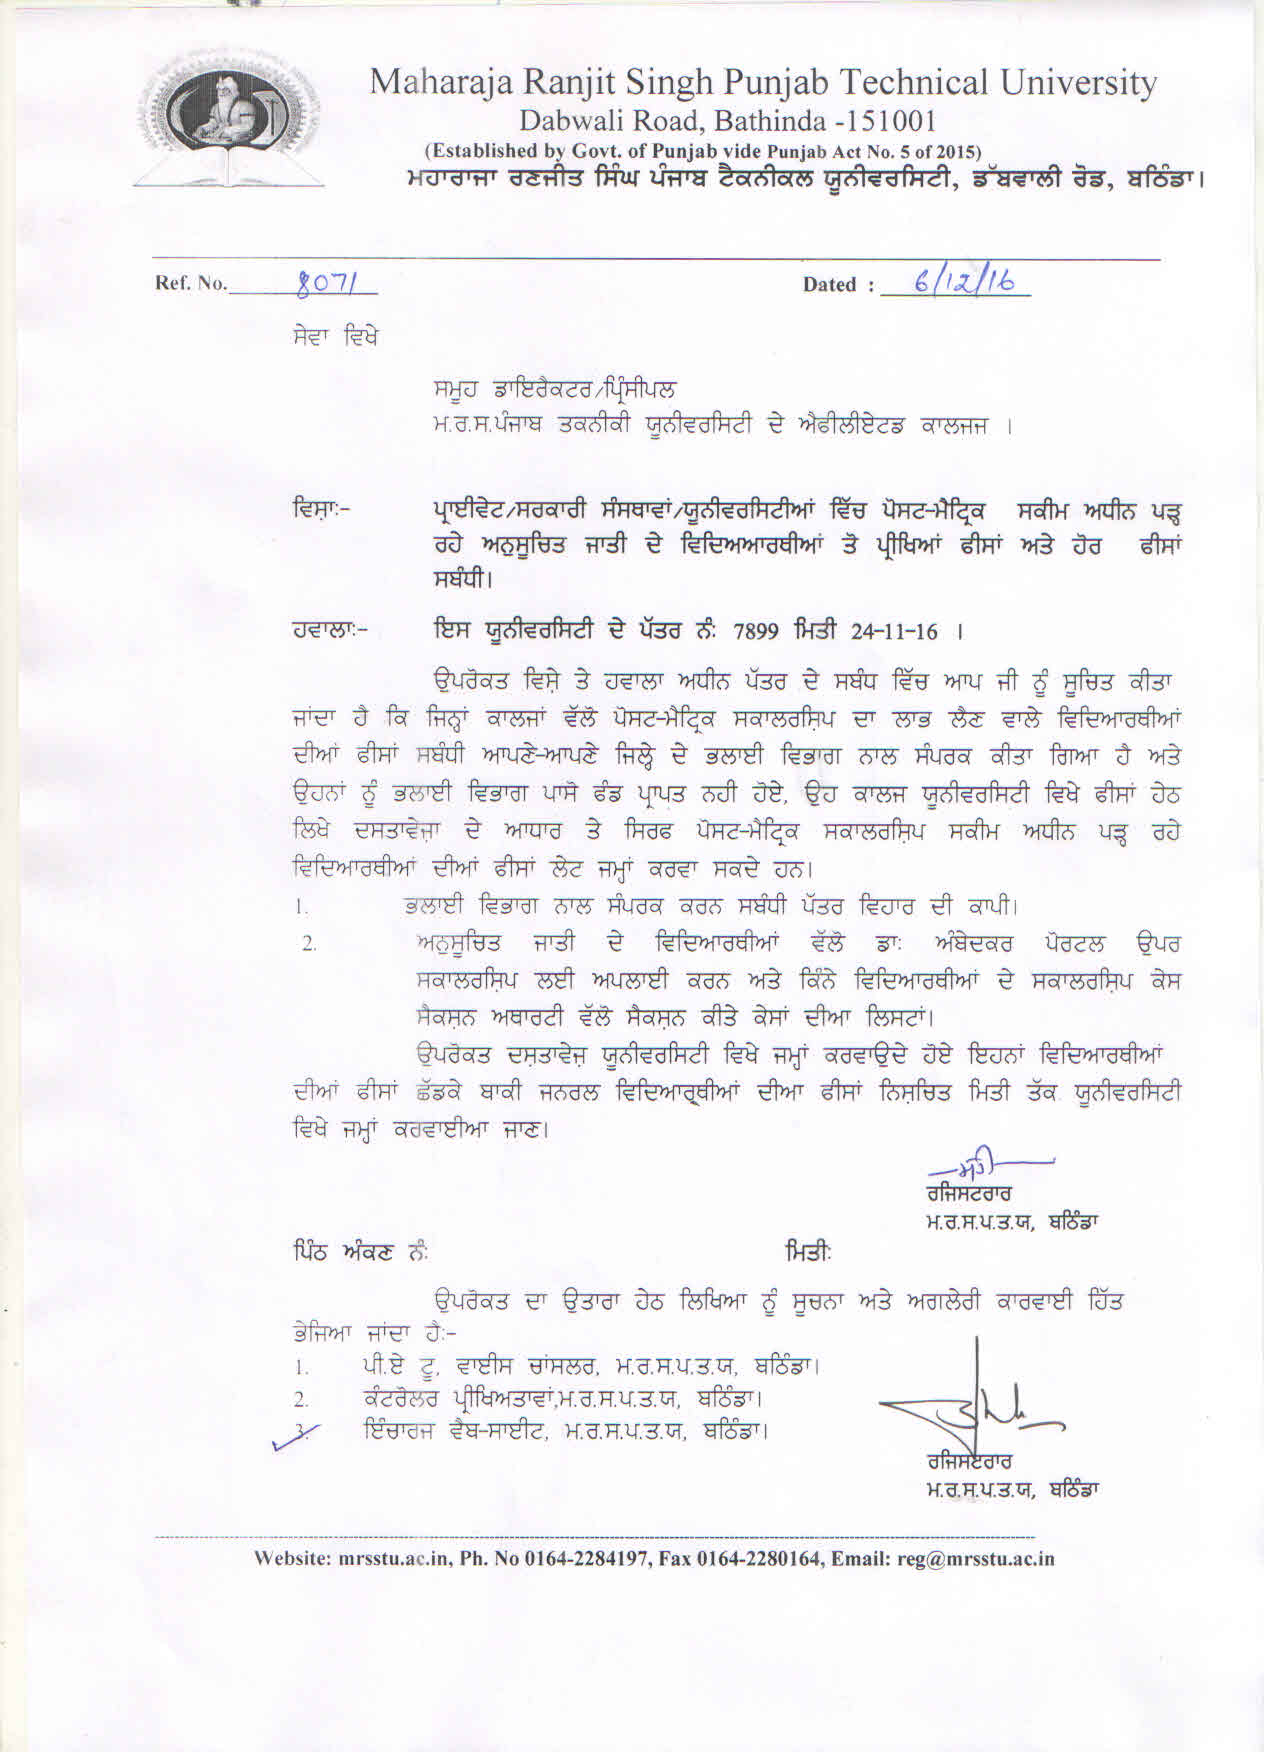 Maharaja ranjit singh punjab technical university regarding fee from the students studying under pmss thecheapjerseys Image collections